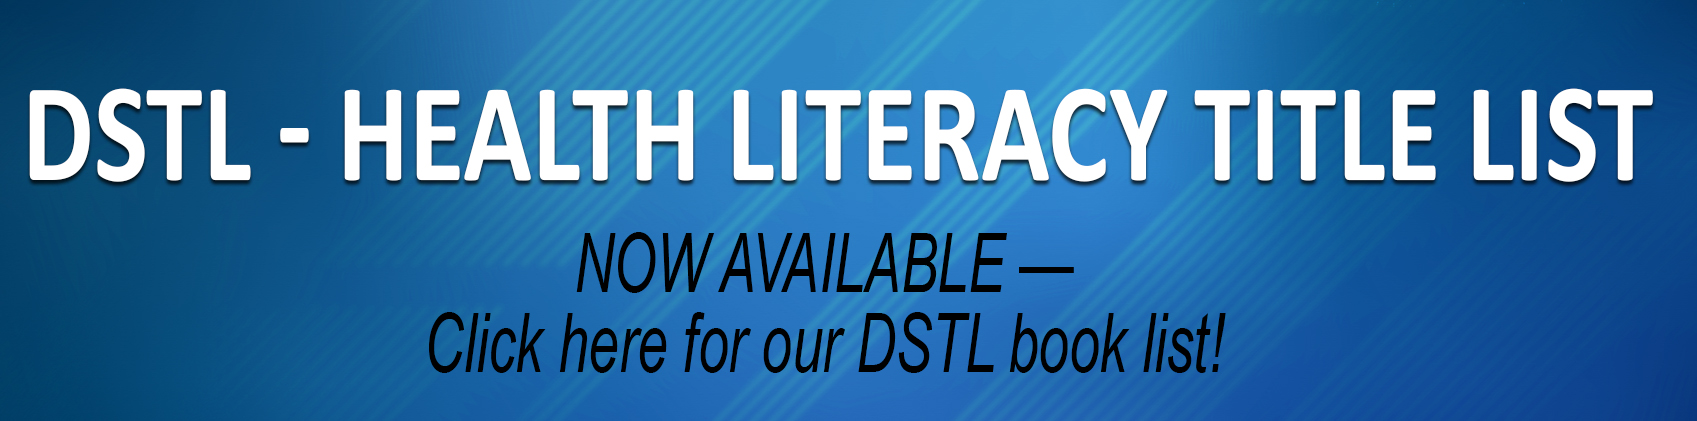 DSTL - Health Literacy Title List Now Available